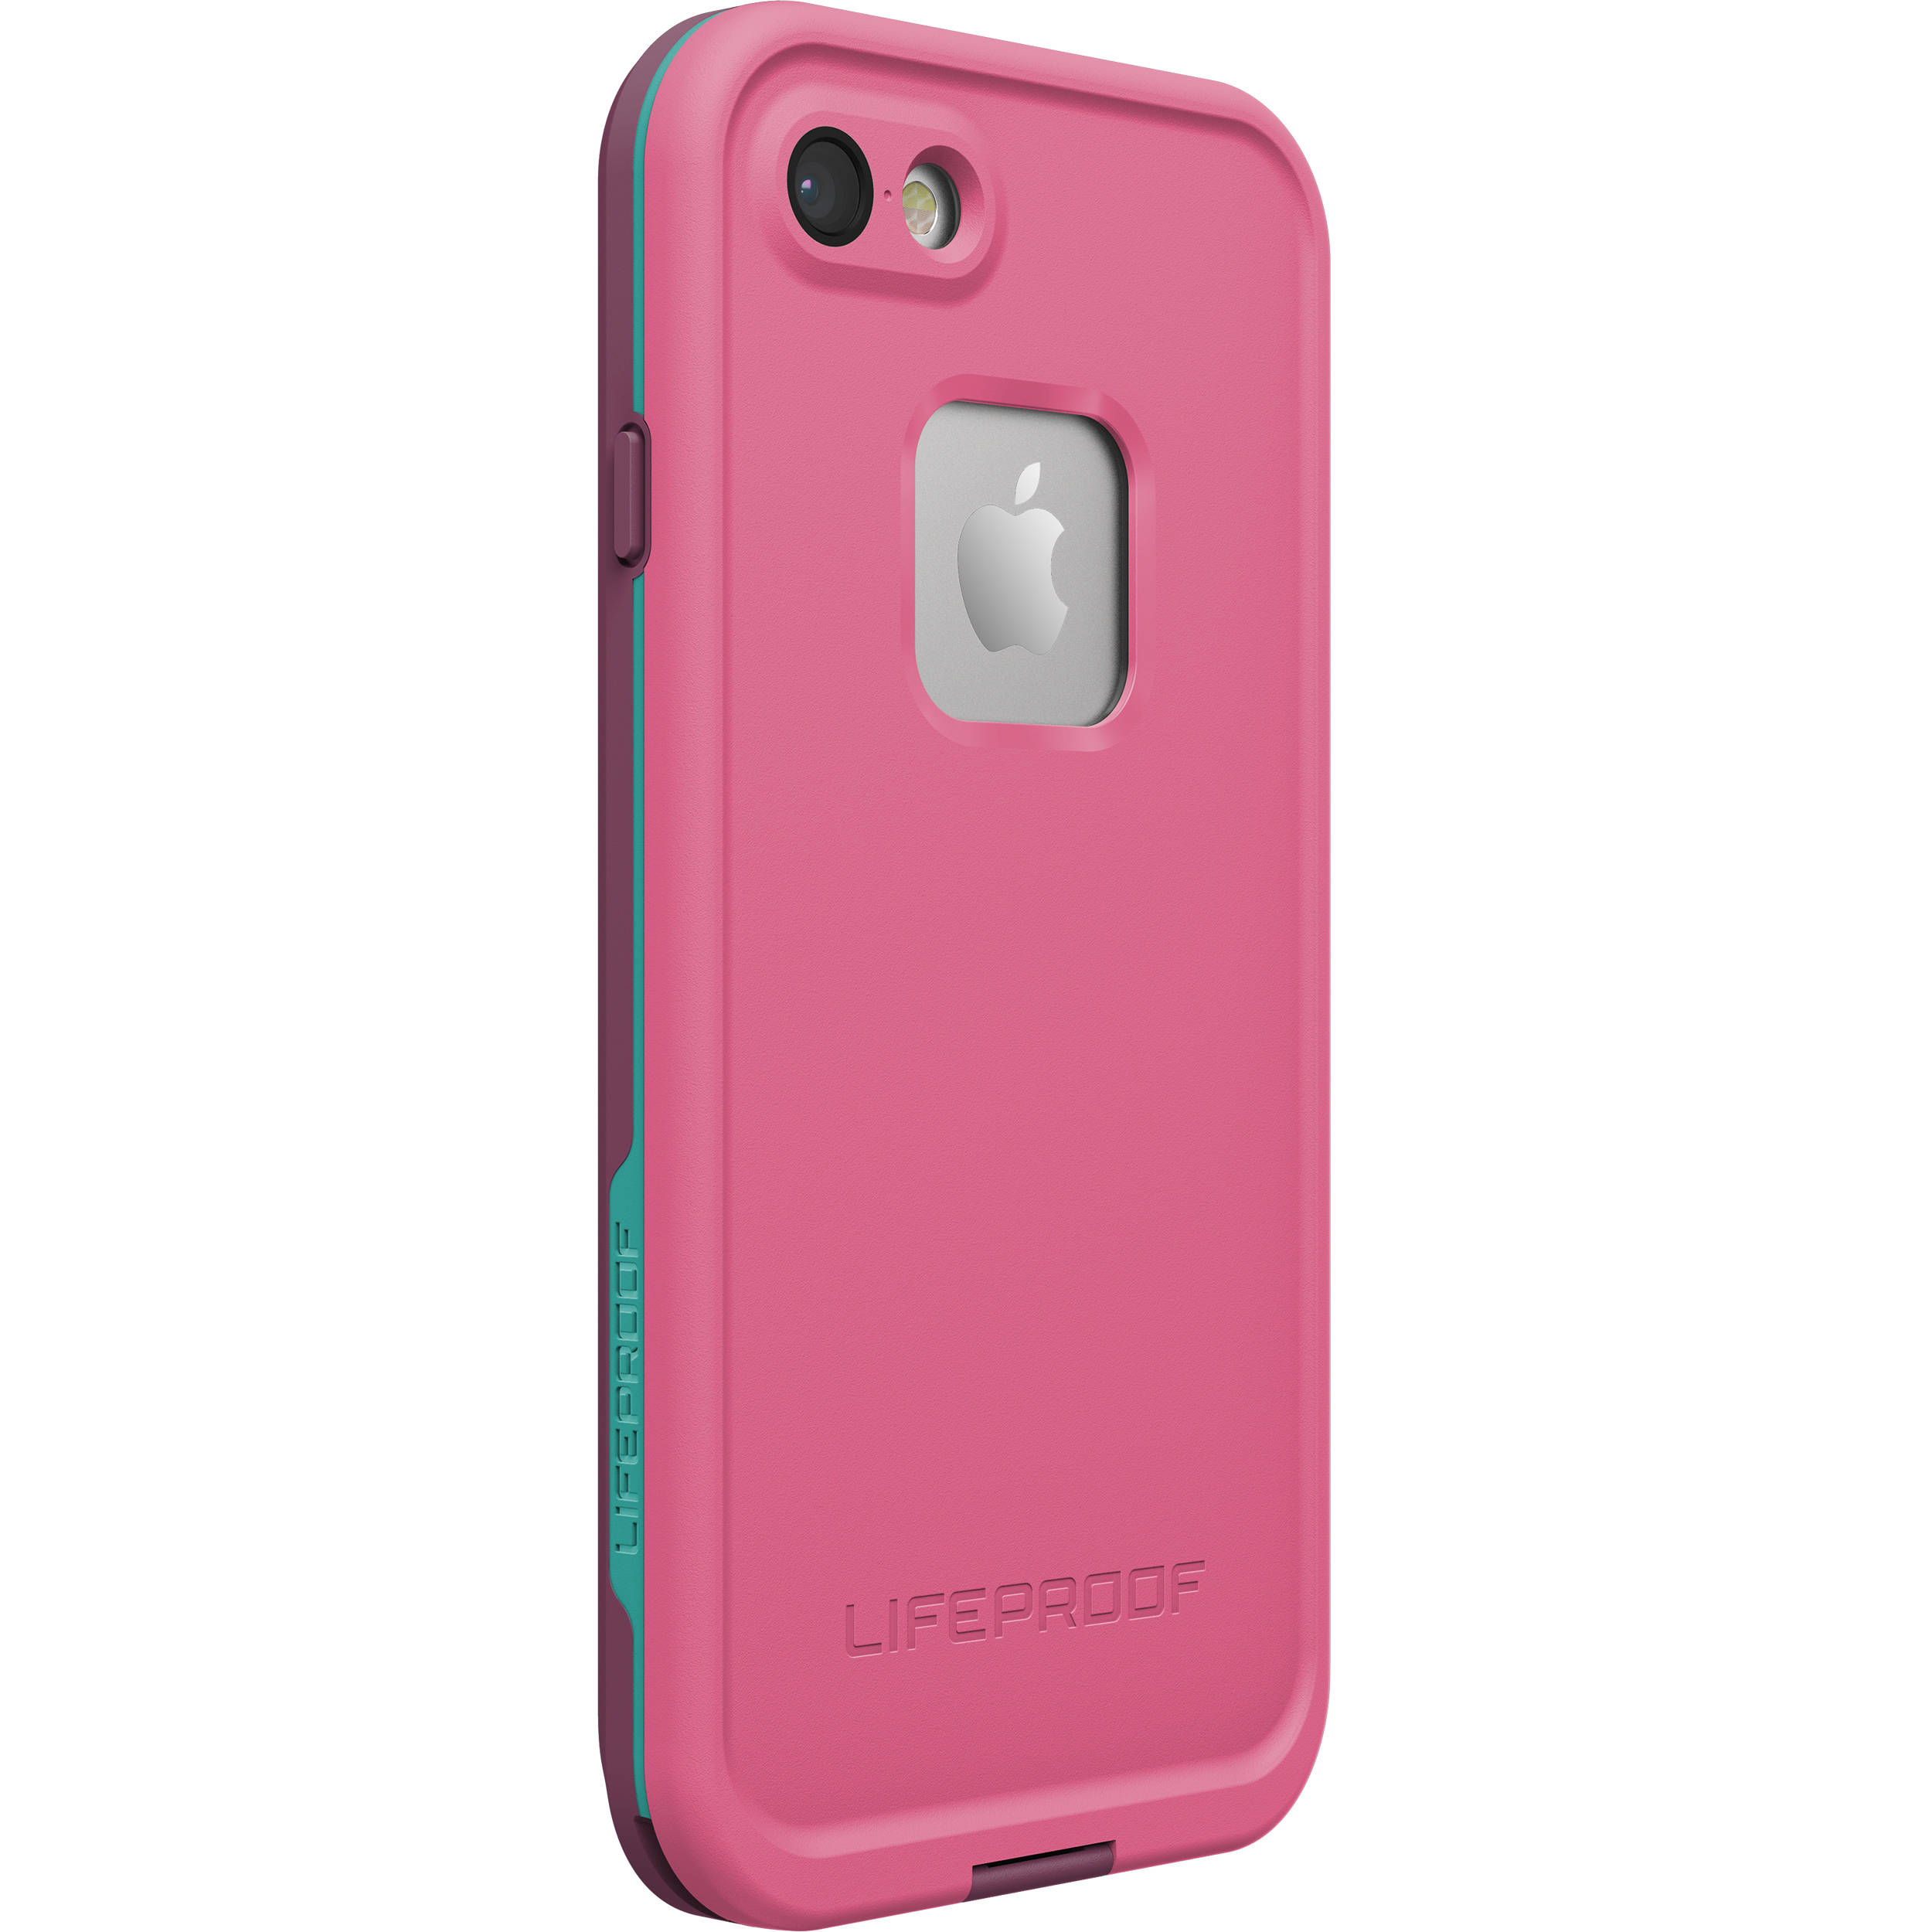 sports shoes 4a8e8 43fb0 LifeProof frē Case for iPhone 7 (Twilight's Edge Pink)